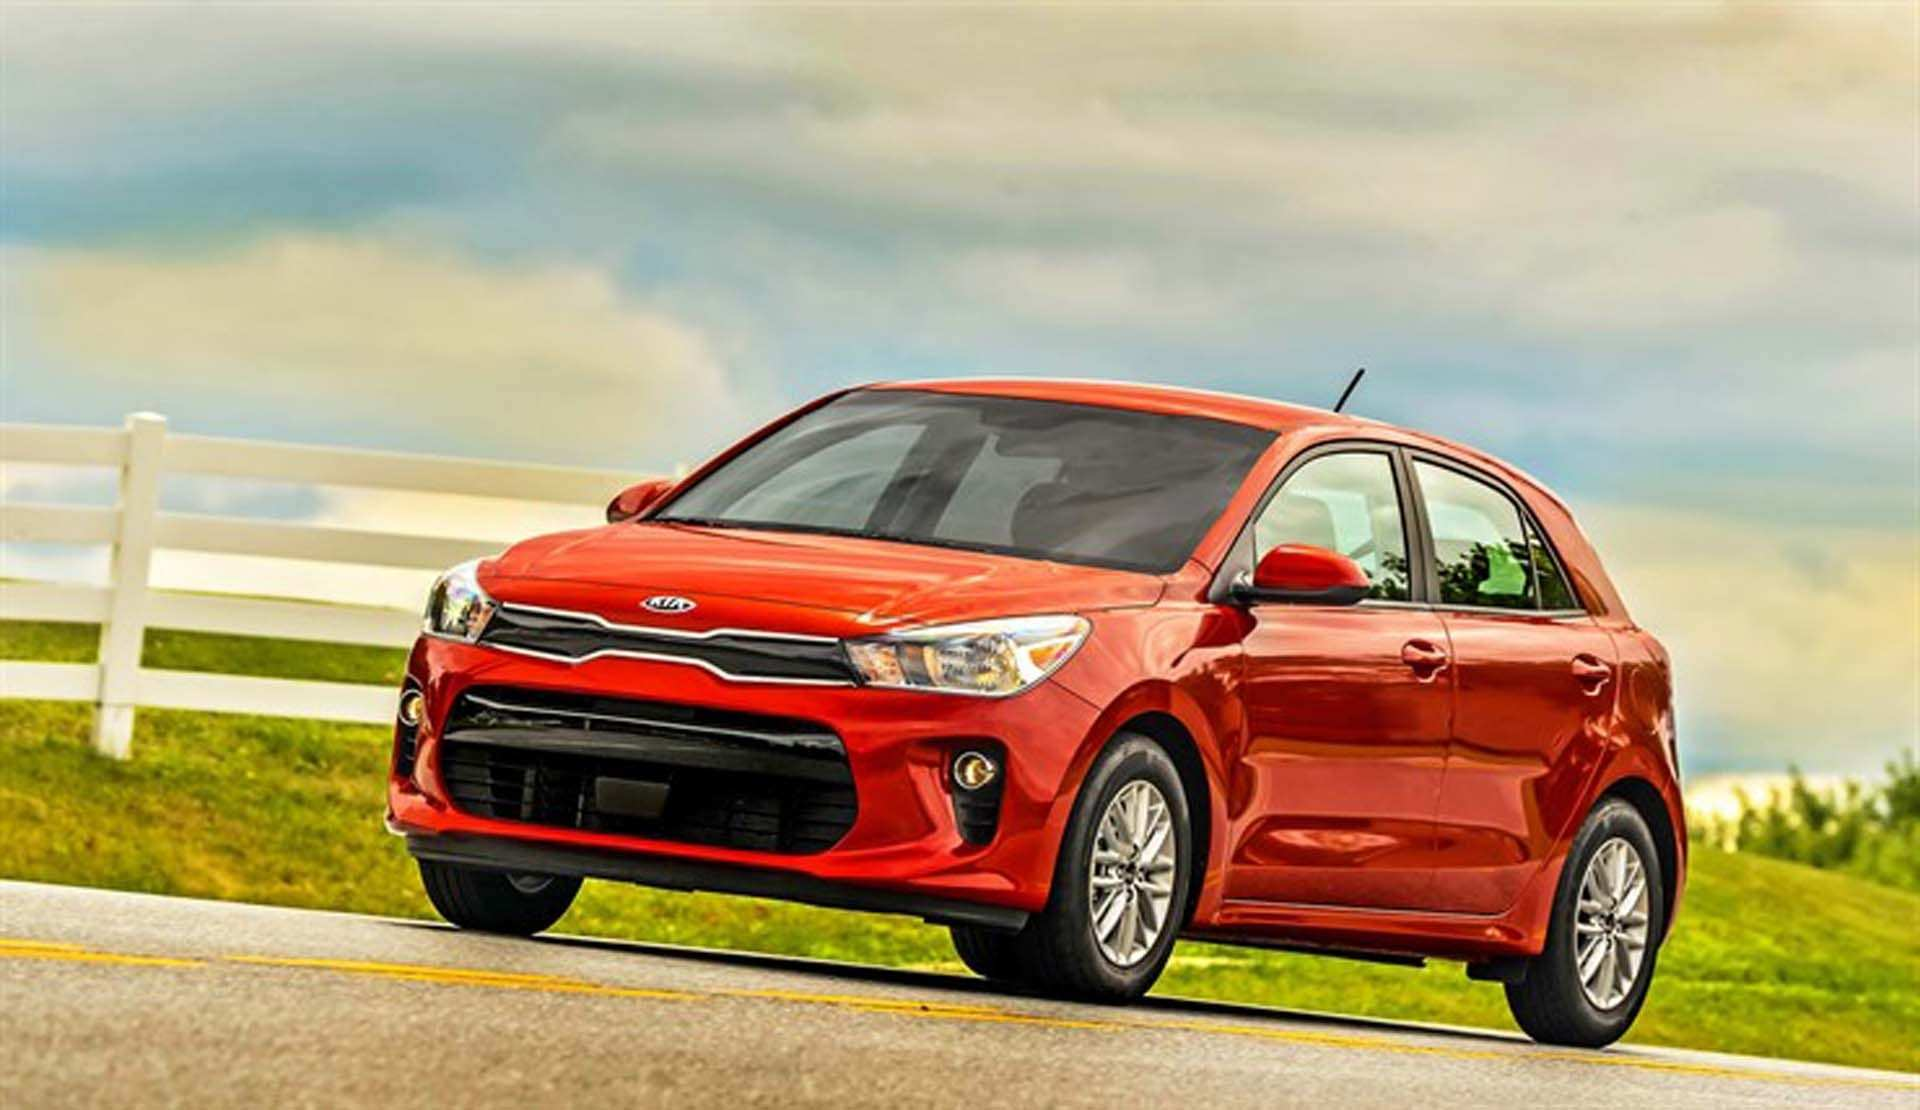 56 Best Review Kia Rio 2020 Review Release for Kia Rio 2020 Review